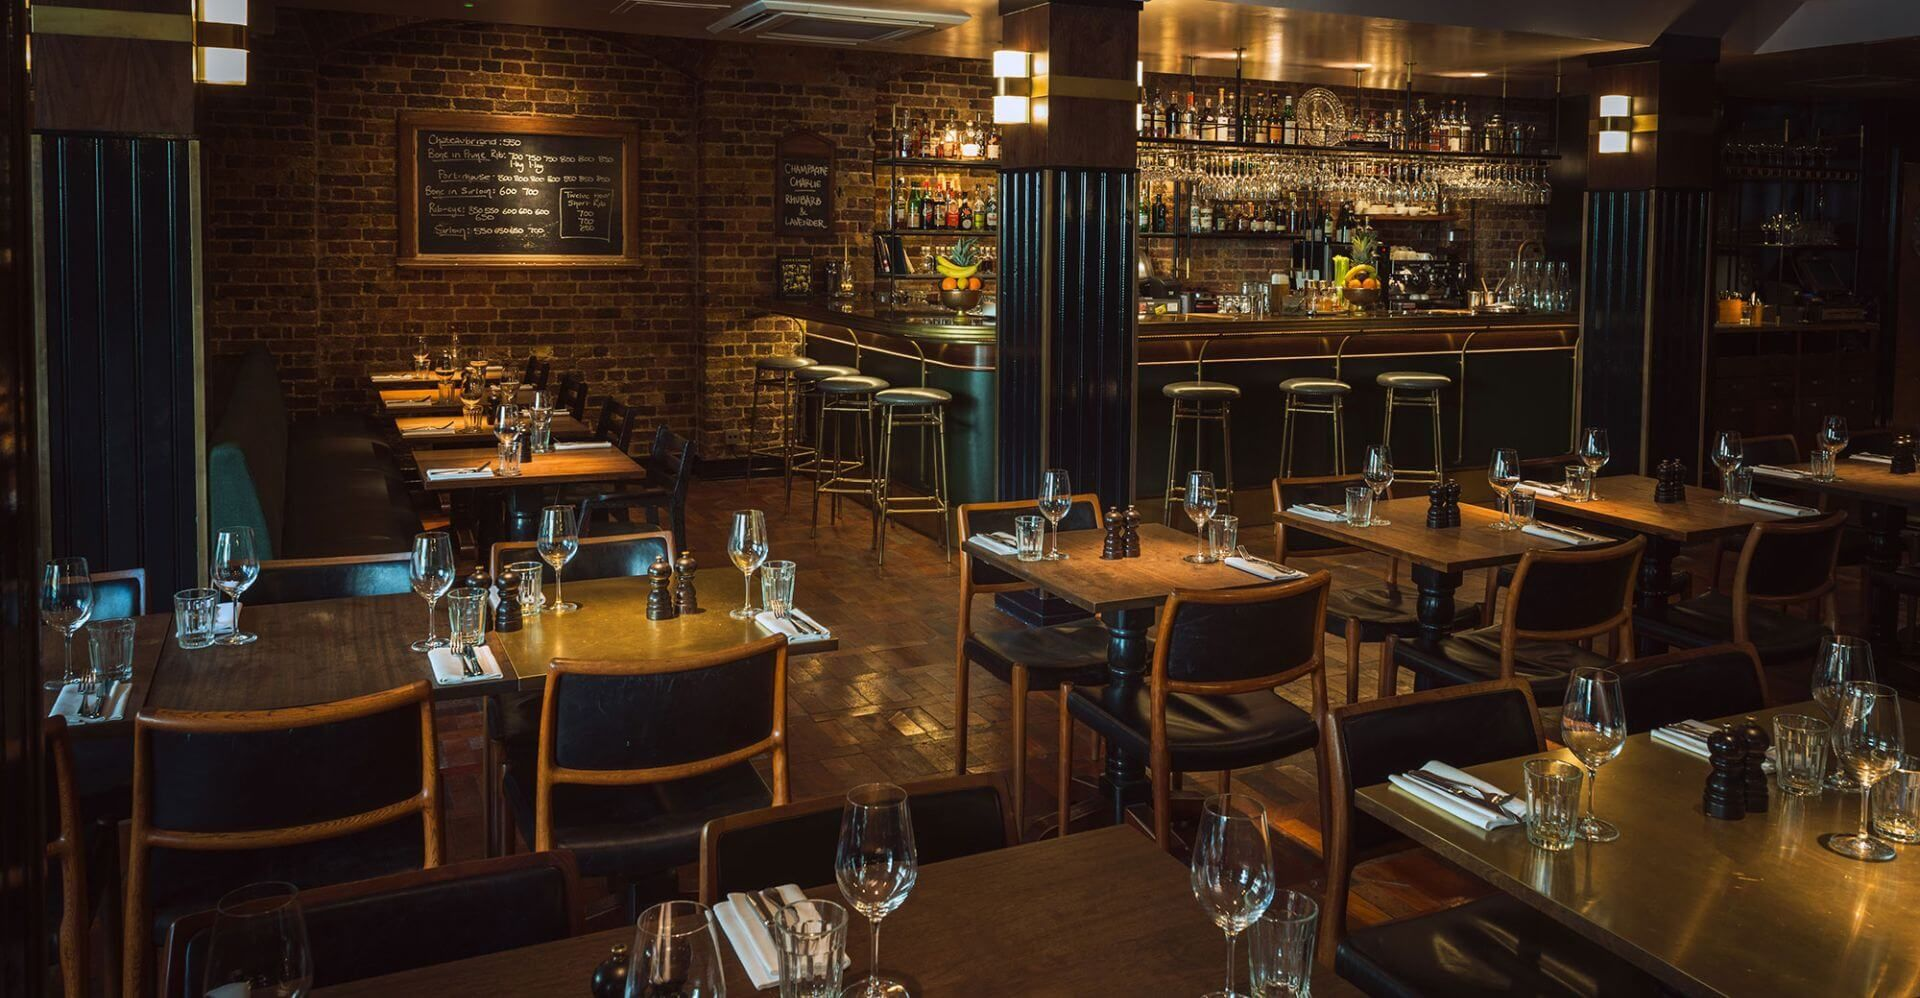 #Hawksmoor Spitalfields #London #Europe #UnitedKingdom #Restaurants #travel #travelblogger #travelgram #travelguide #travels #travelling #travelblog #traveladdict #traveladikkt #beautifuldestinations #bucketlist #luxury #luxurylifestyle #luxurytravel #luxurydestinations #lifestyle #lifestyleblogger #beautifulplaces #beautifulplace #beautiful #beautifuldestination